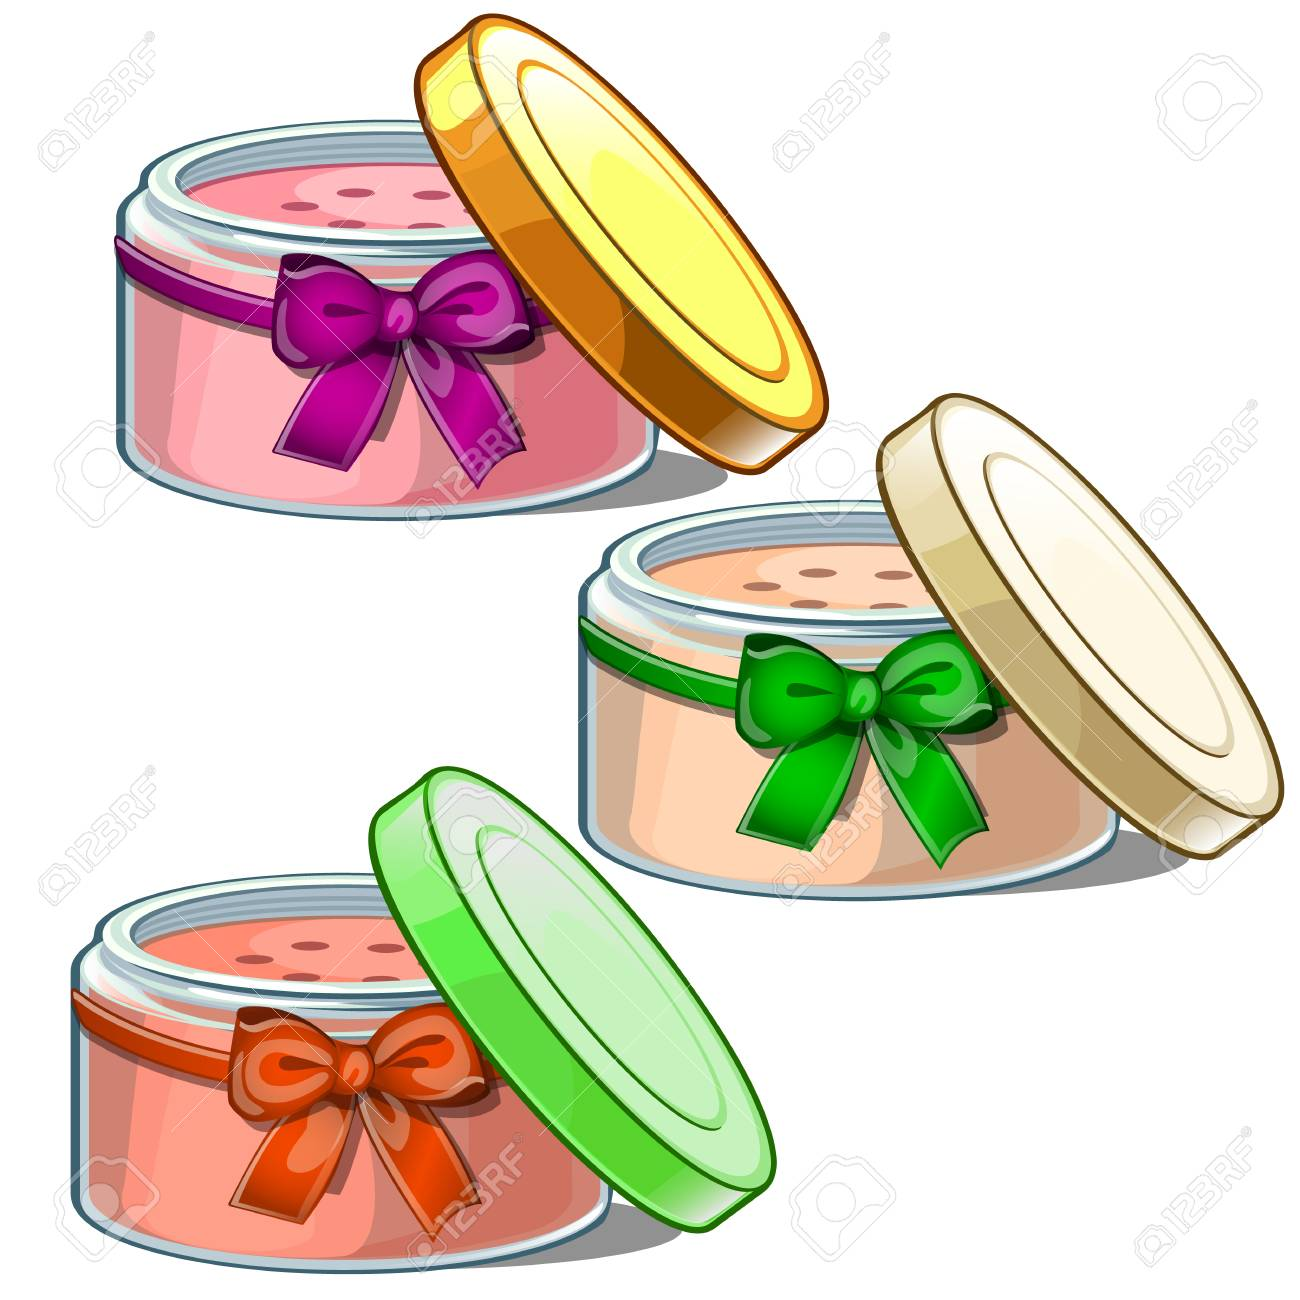 Three Open Cosmetic Jars With Cream For Skin Care Of Body And Royalty Free Cliparts Vectors And Stock Illustration Image 86084030